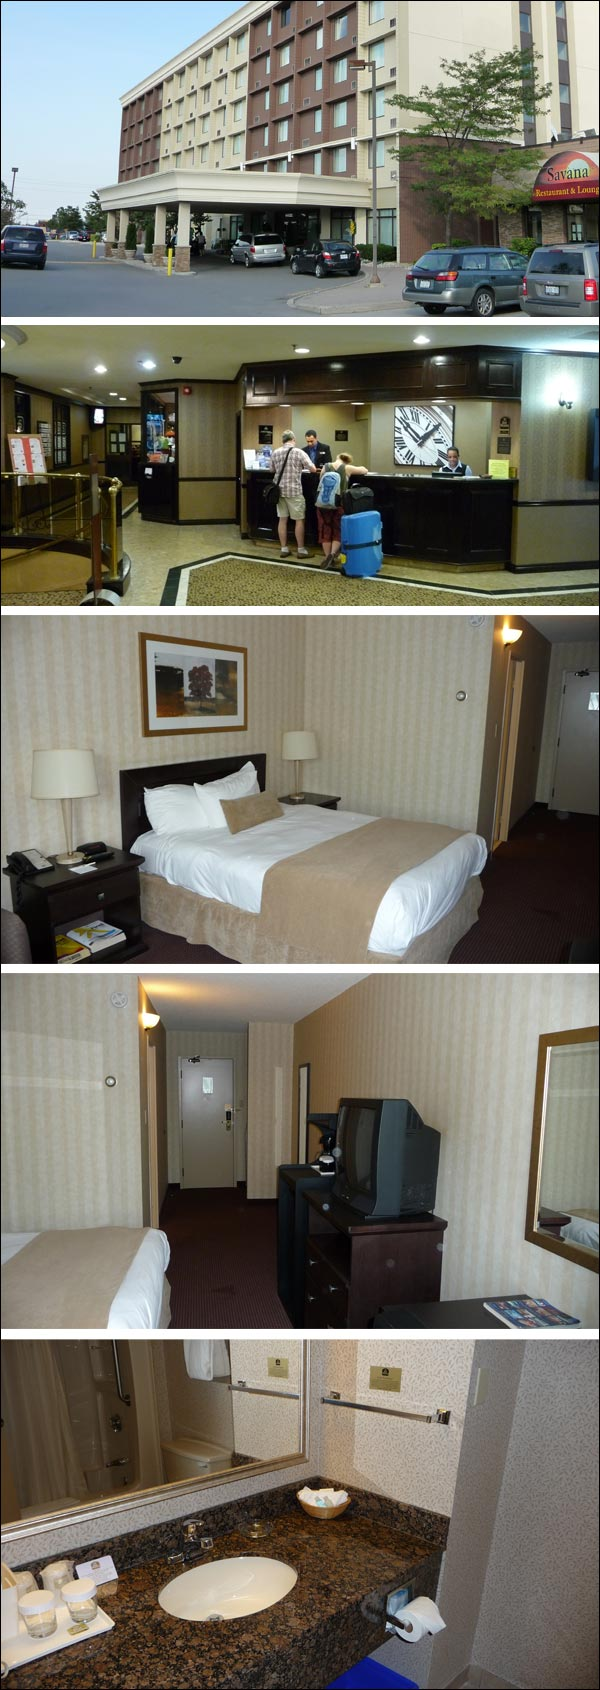 Image: Best Western Toronto Airport